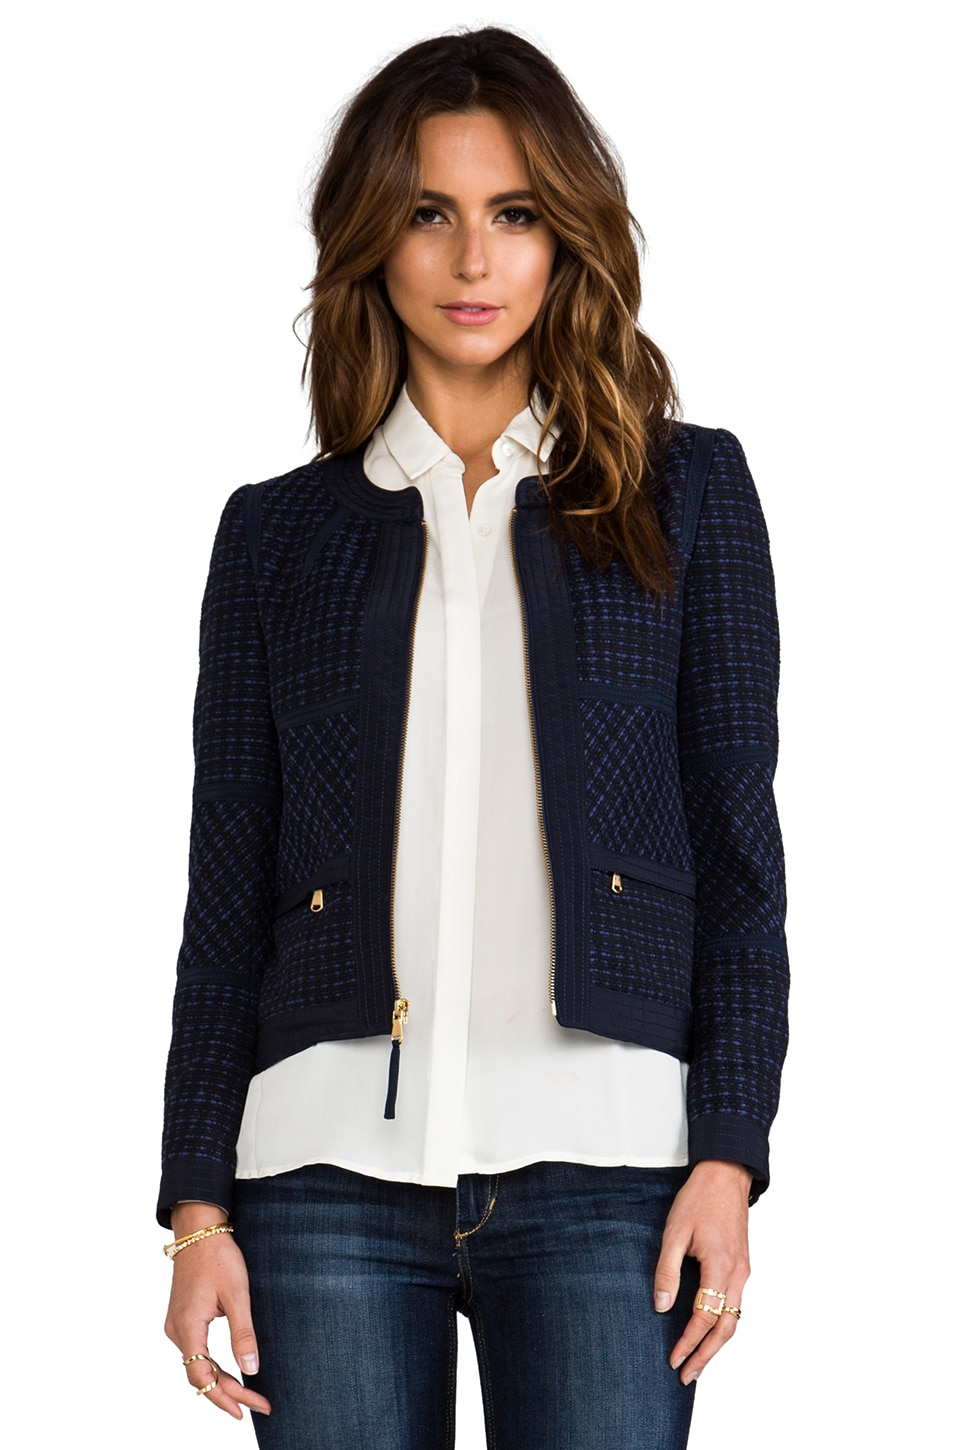 Marc by Marc Jacobs Cacey Tweed Jacket in Marine Multi